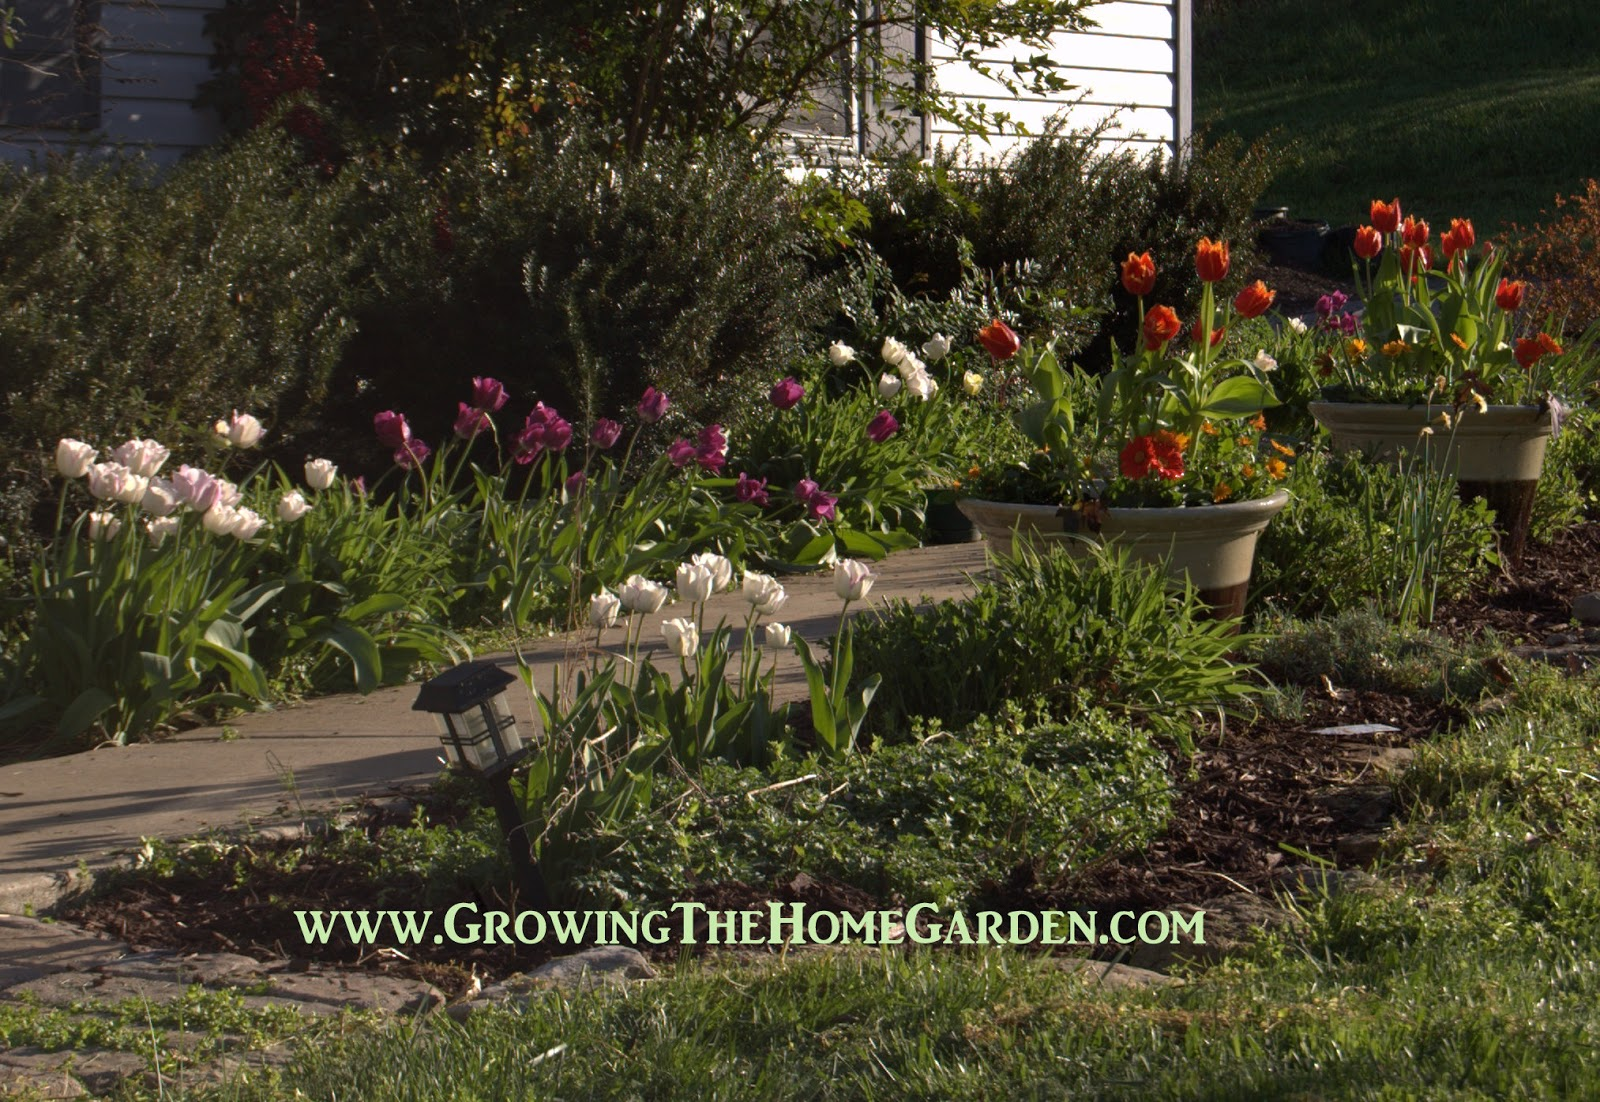 Planting A Tulip Garden in Spring - Growing The Home Garden